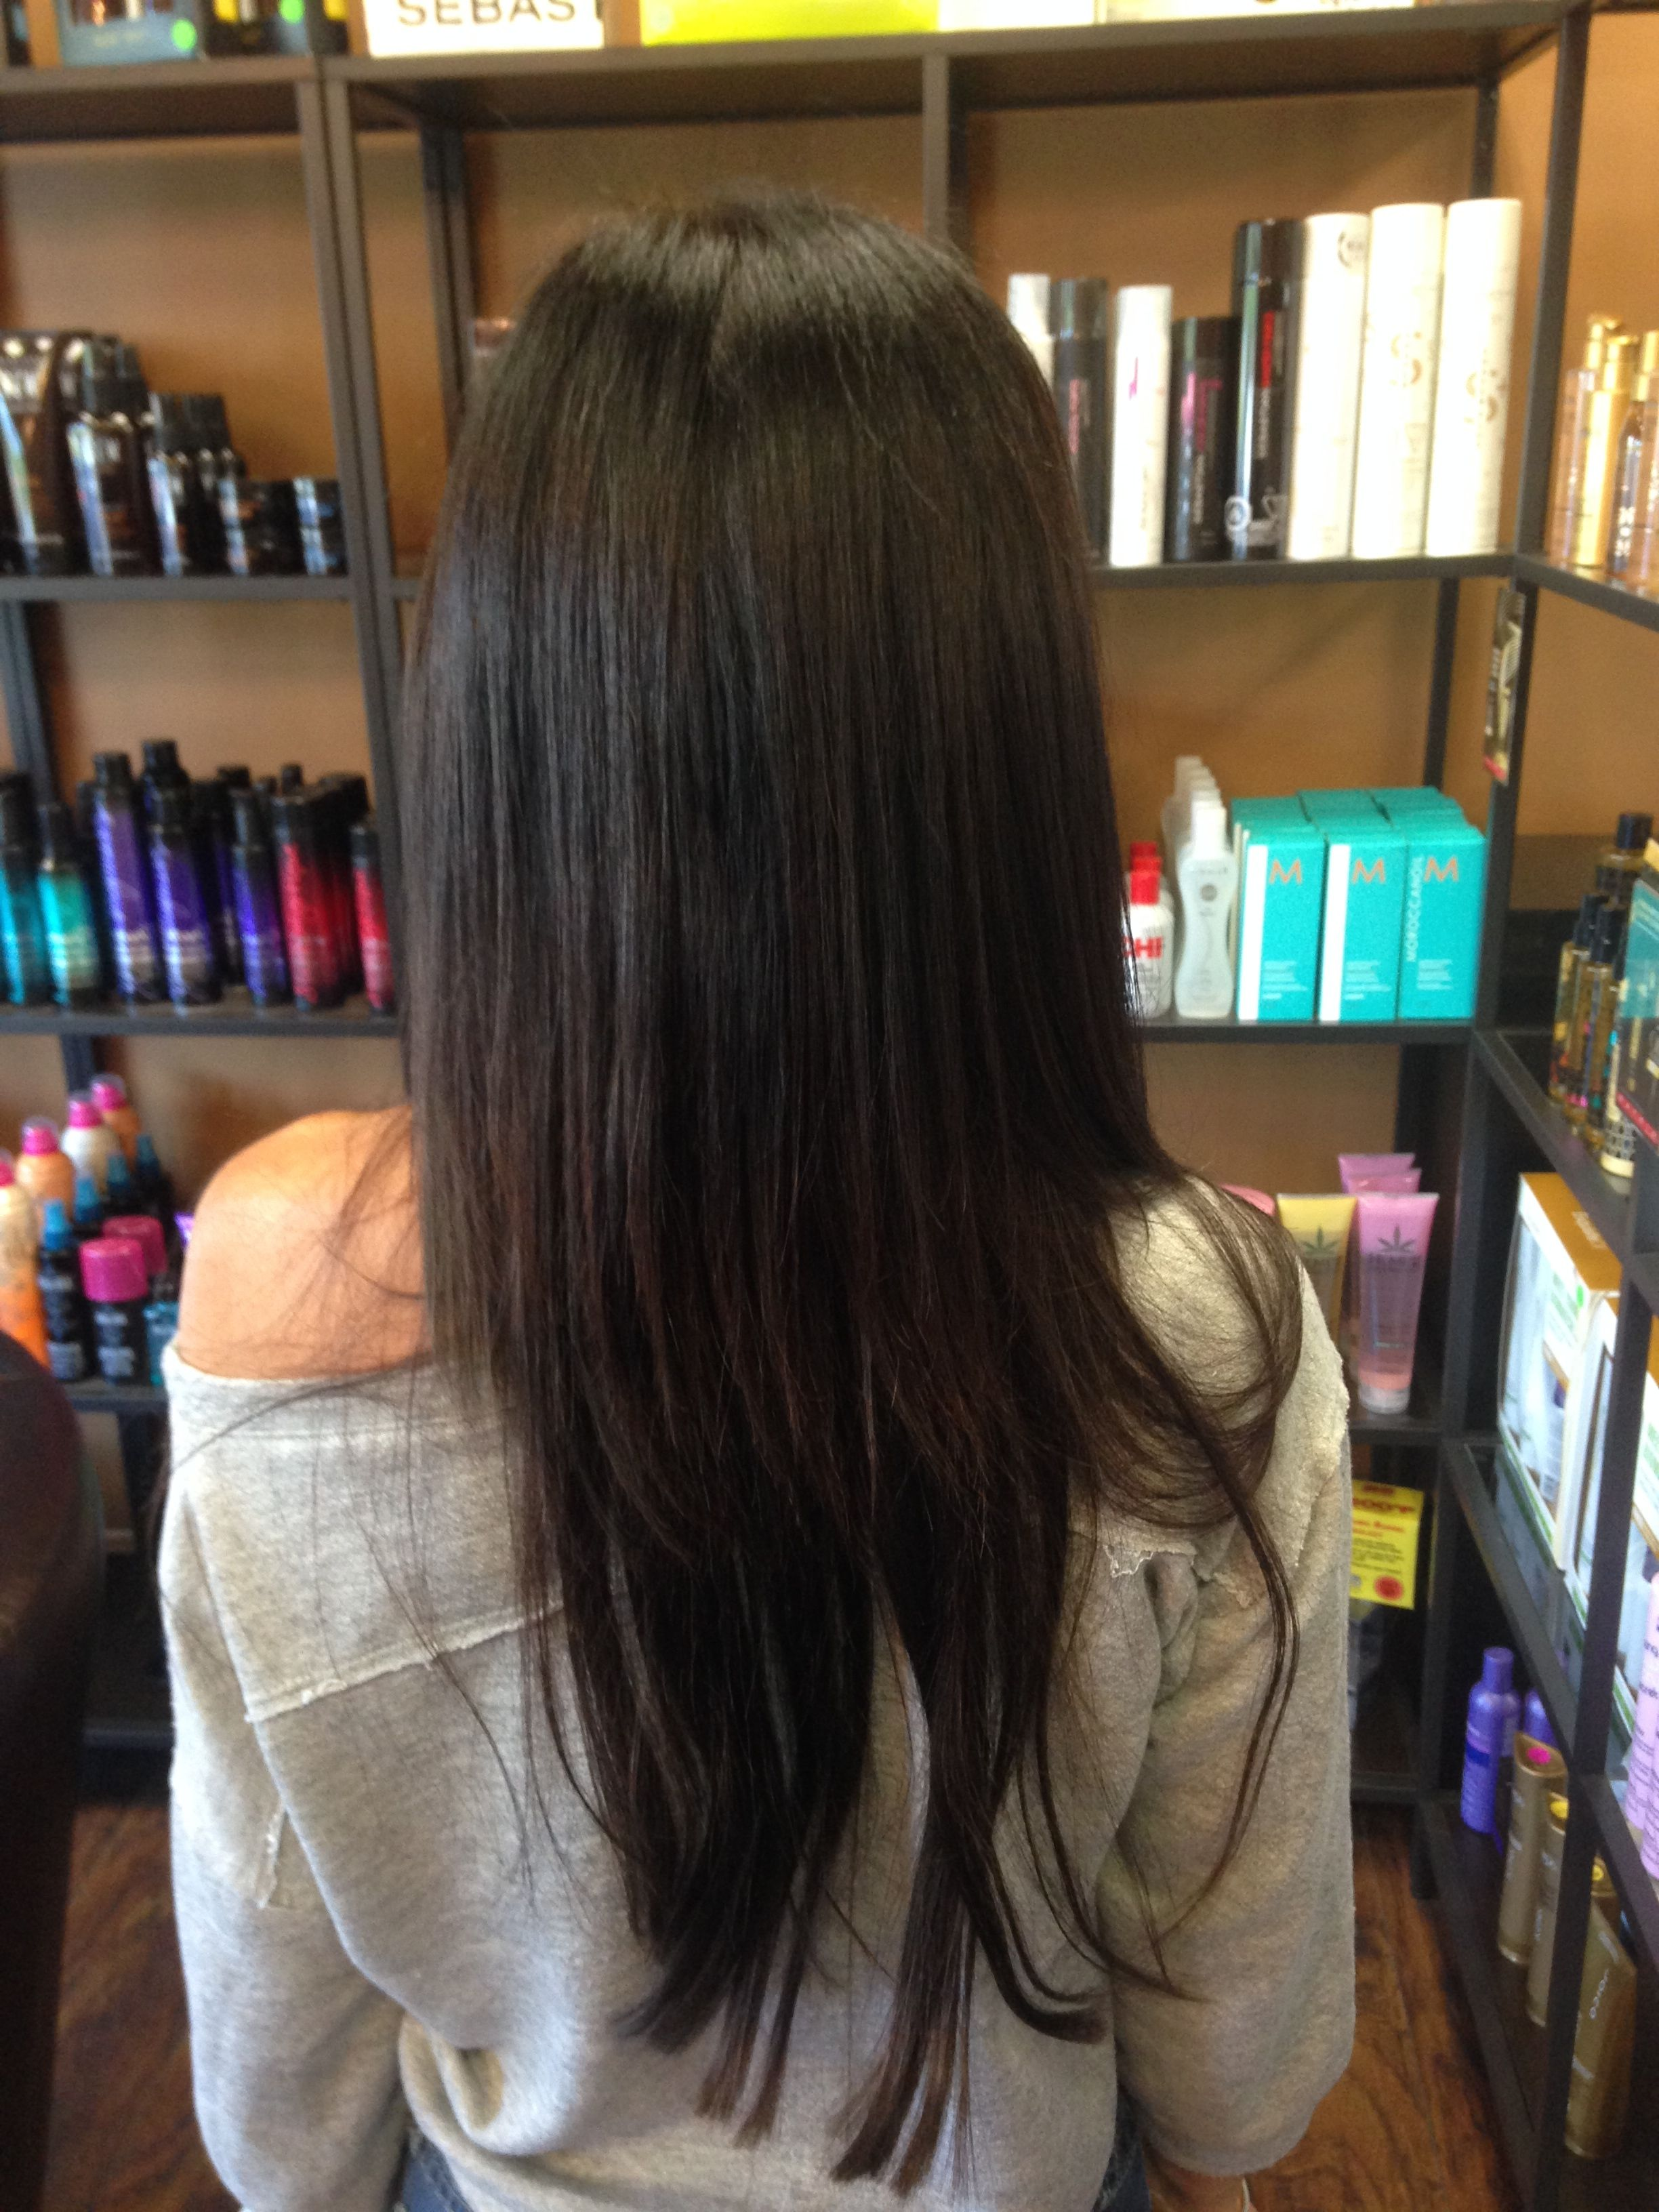 Halo Hair Extensions Get Beautiful Long Silky Hair In Less Let